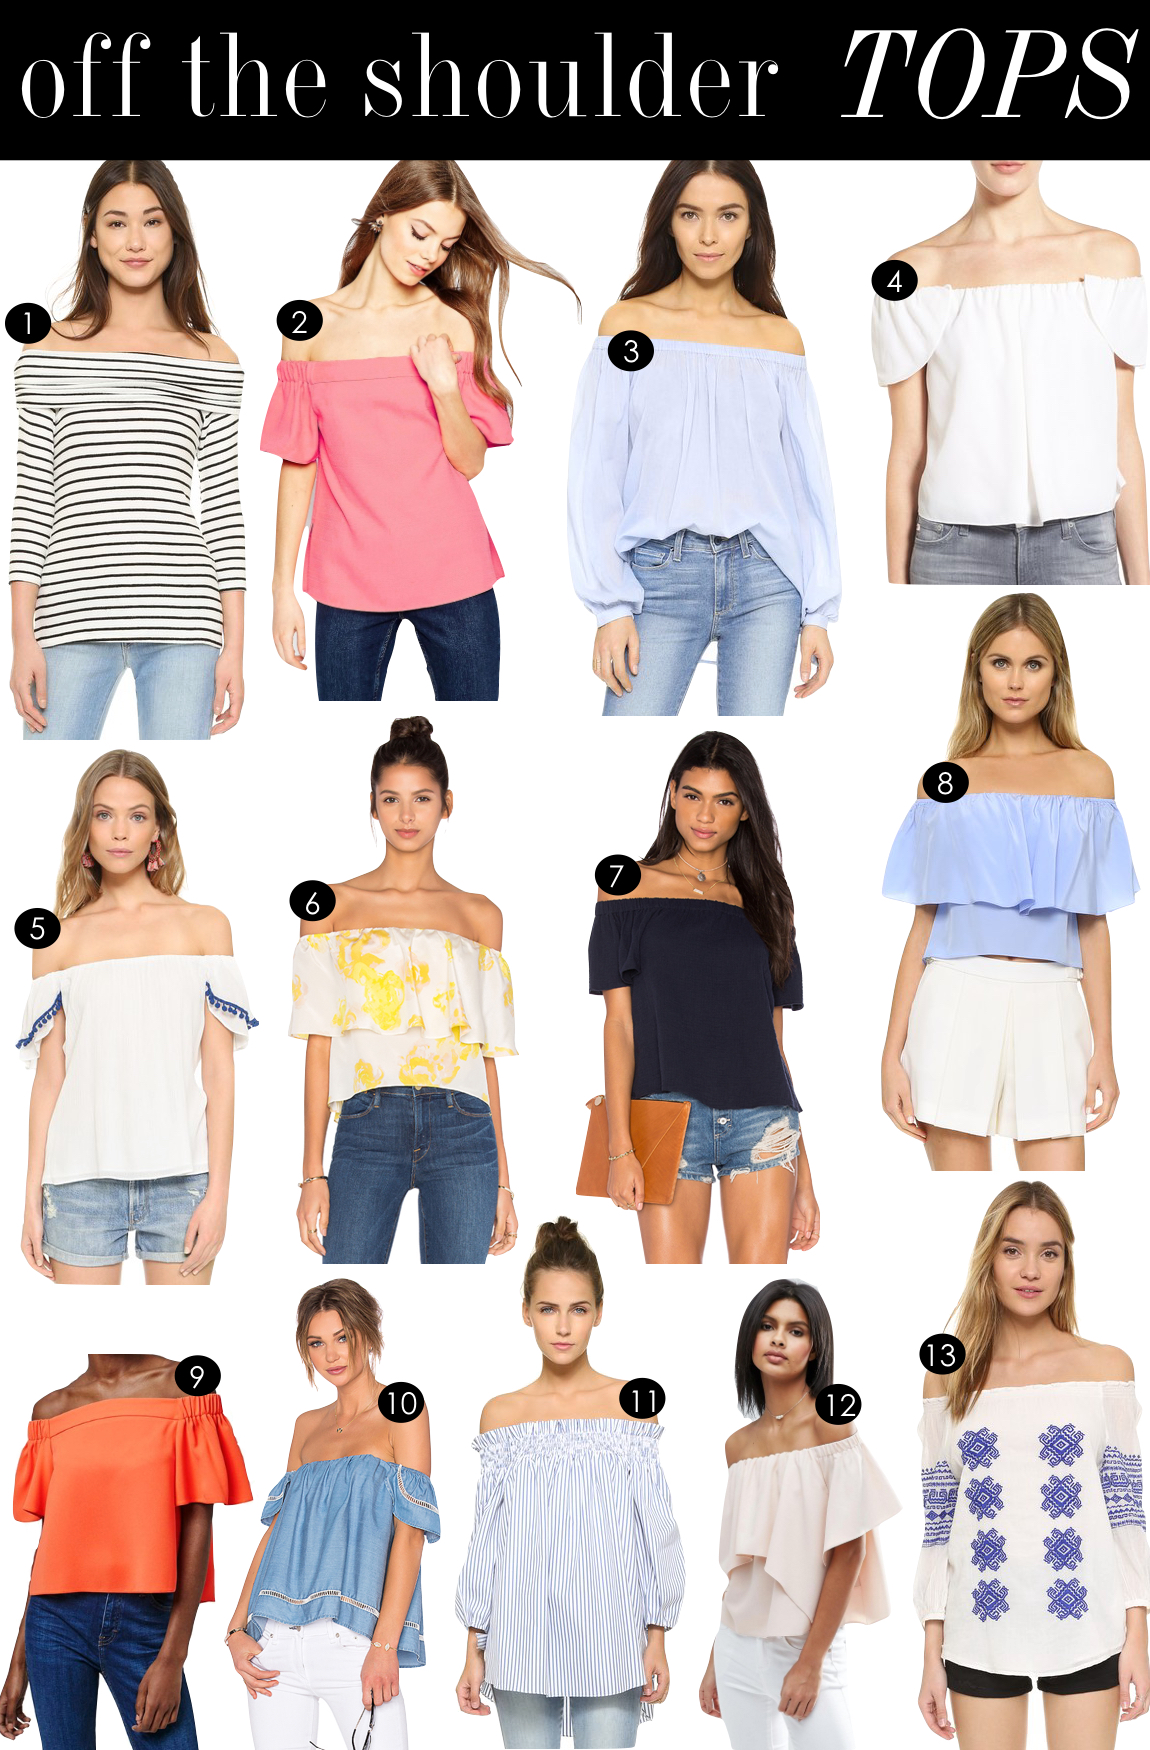 Off the Shoulder Tops | Kiki's List.